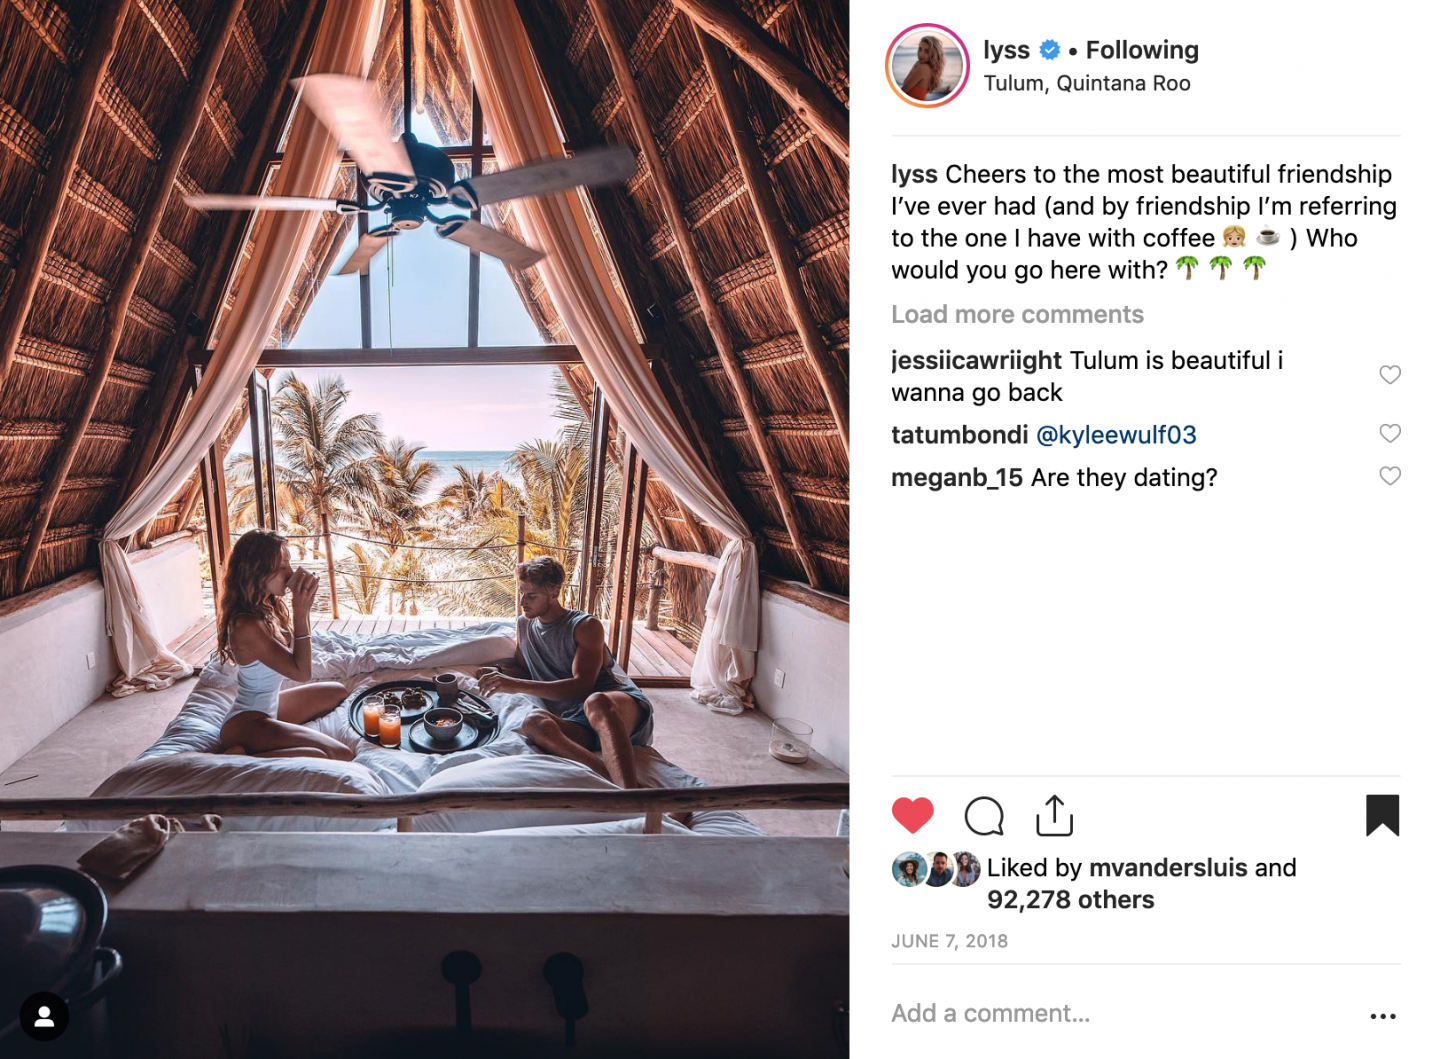 A couple eating breakfast in bed at La Valise hotel in Tulum Mexico